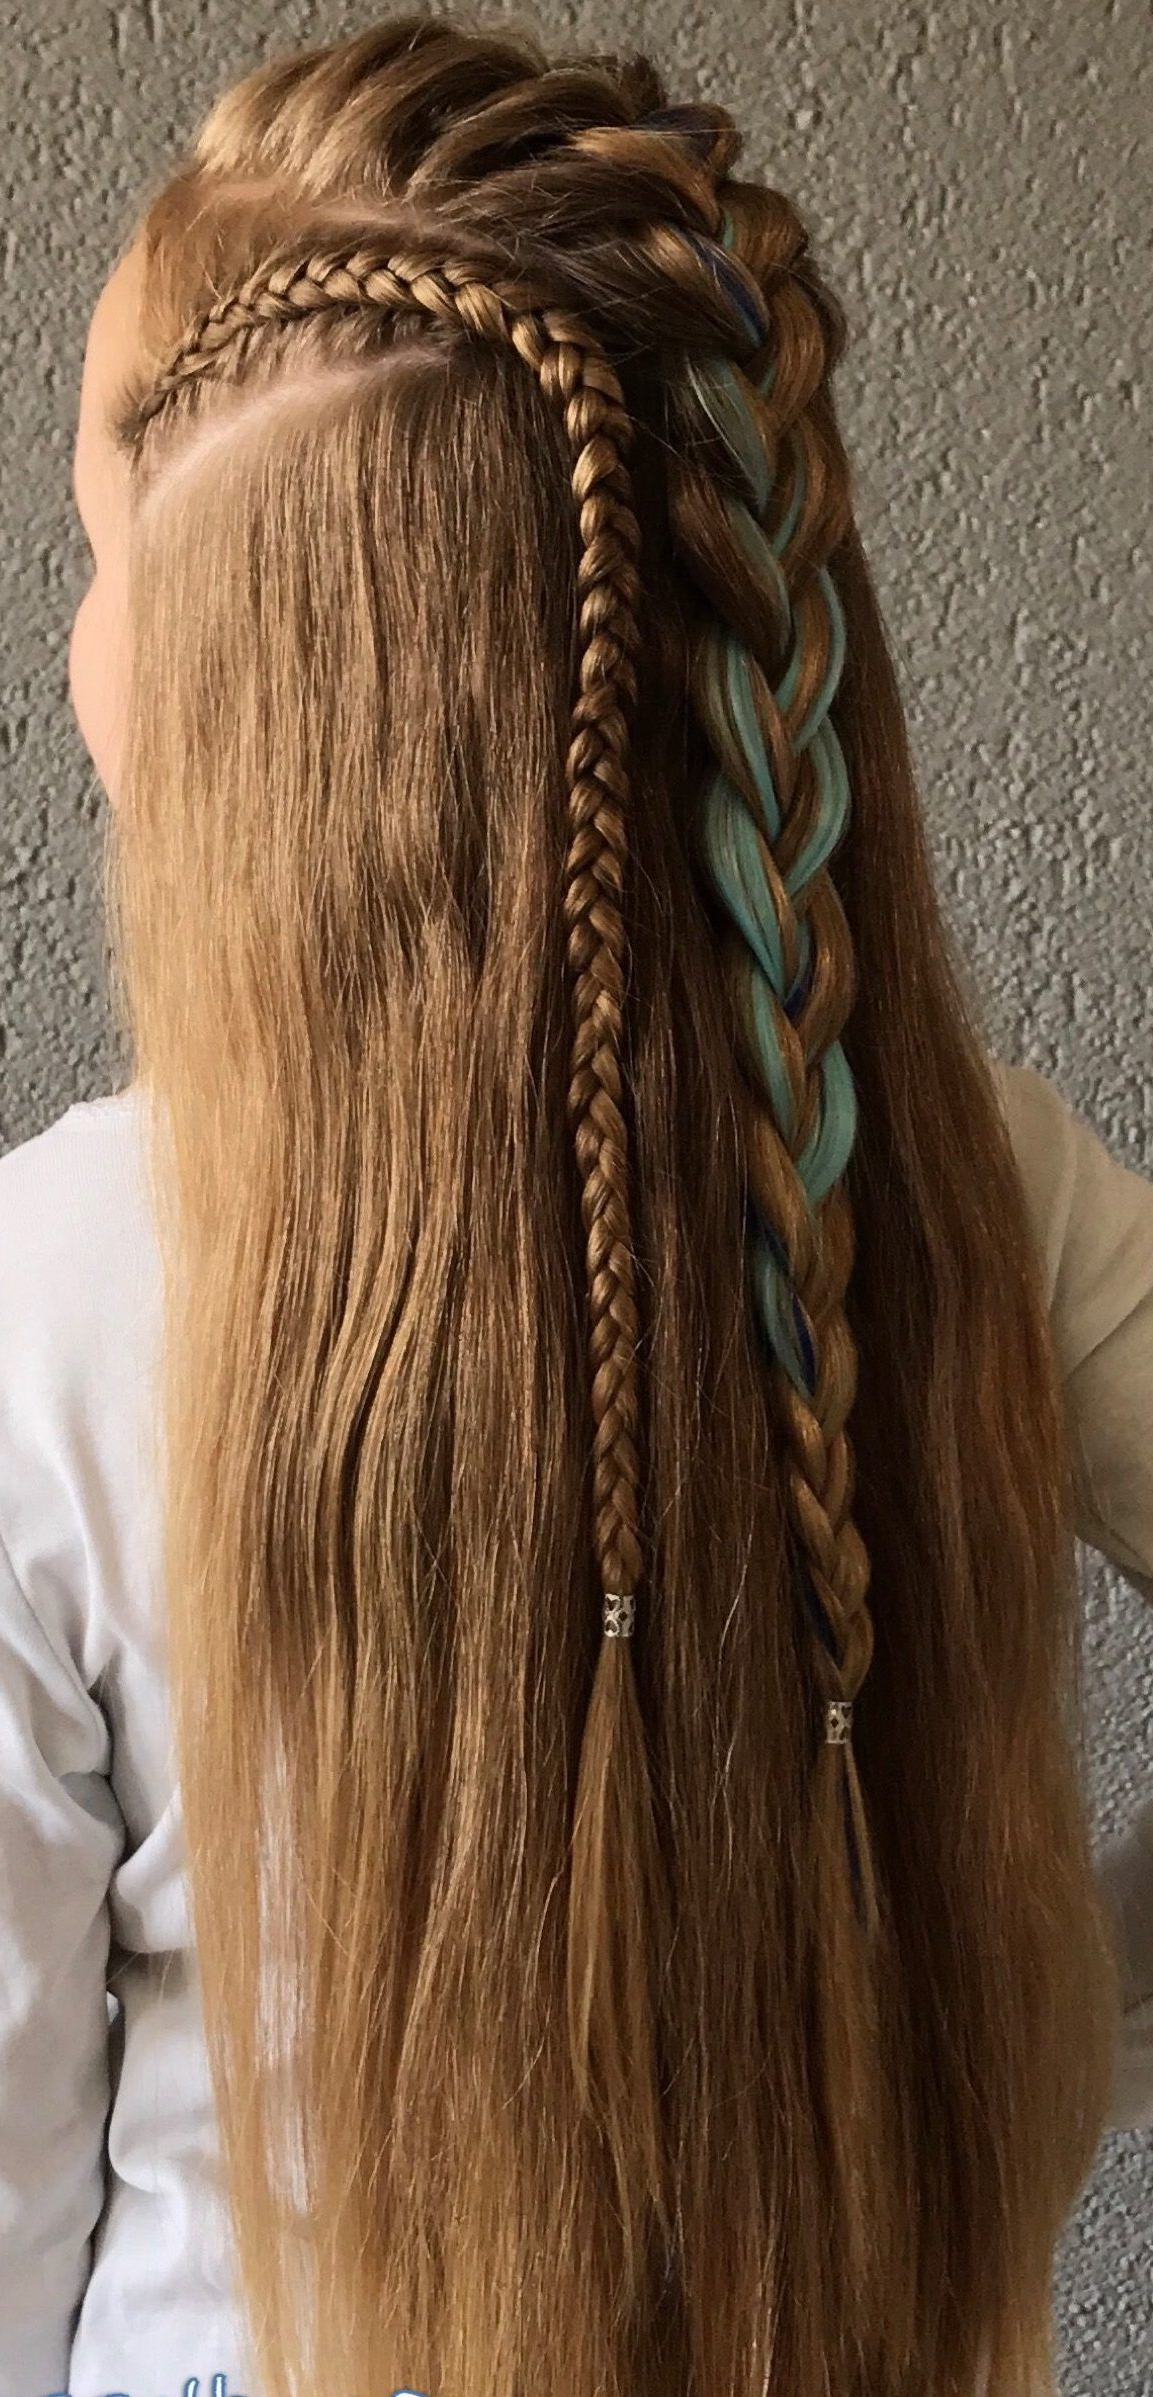 37 Dutch Braid Hairstyles – Braided Hairstyles With Throughout Most Up To Date Three Strand Pigtails Braid Hairstyles (Gallery 5 of 20)